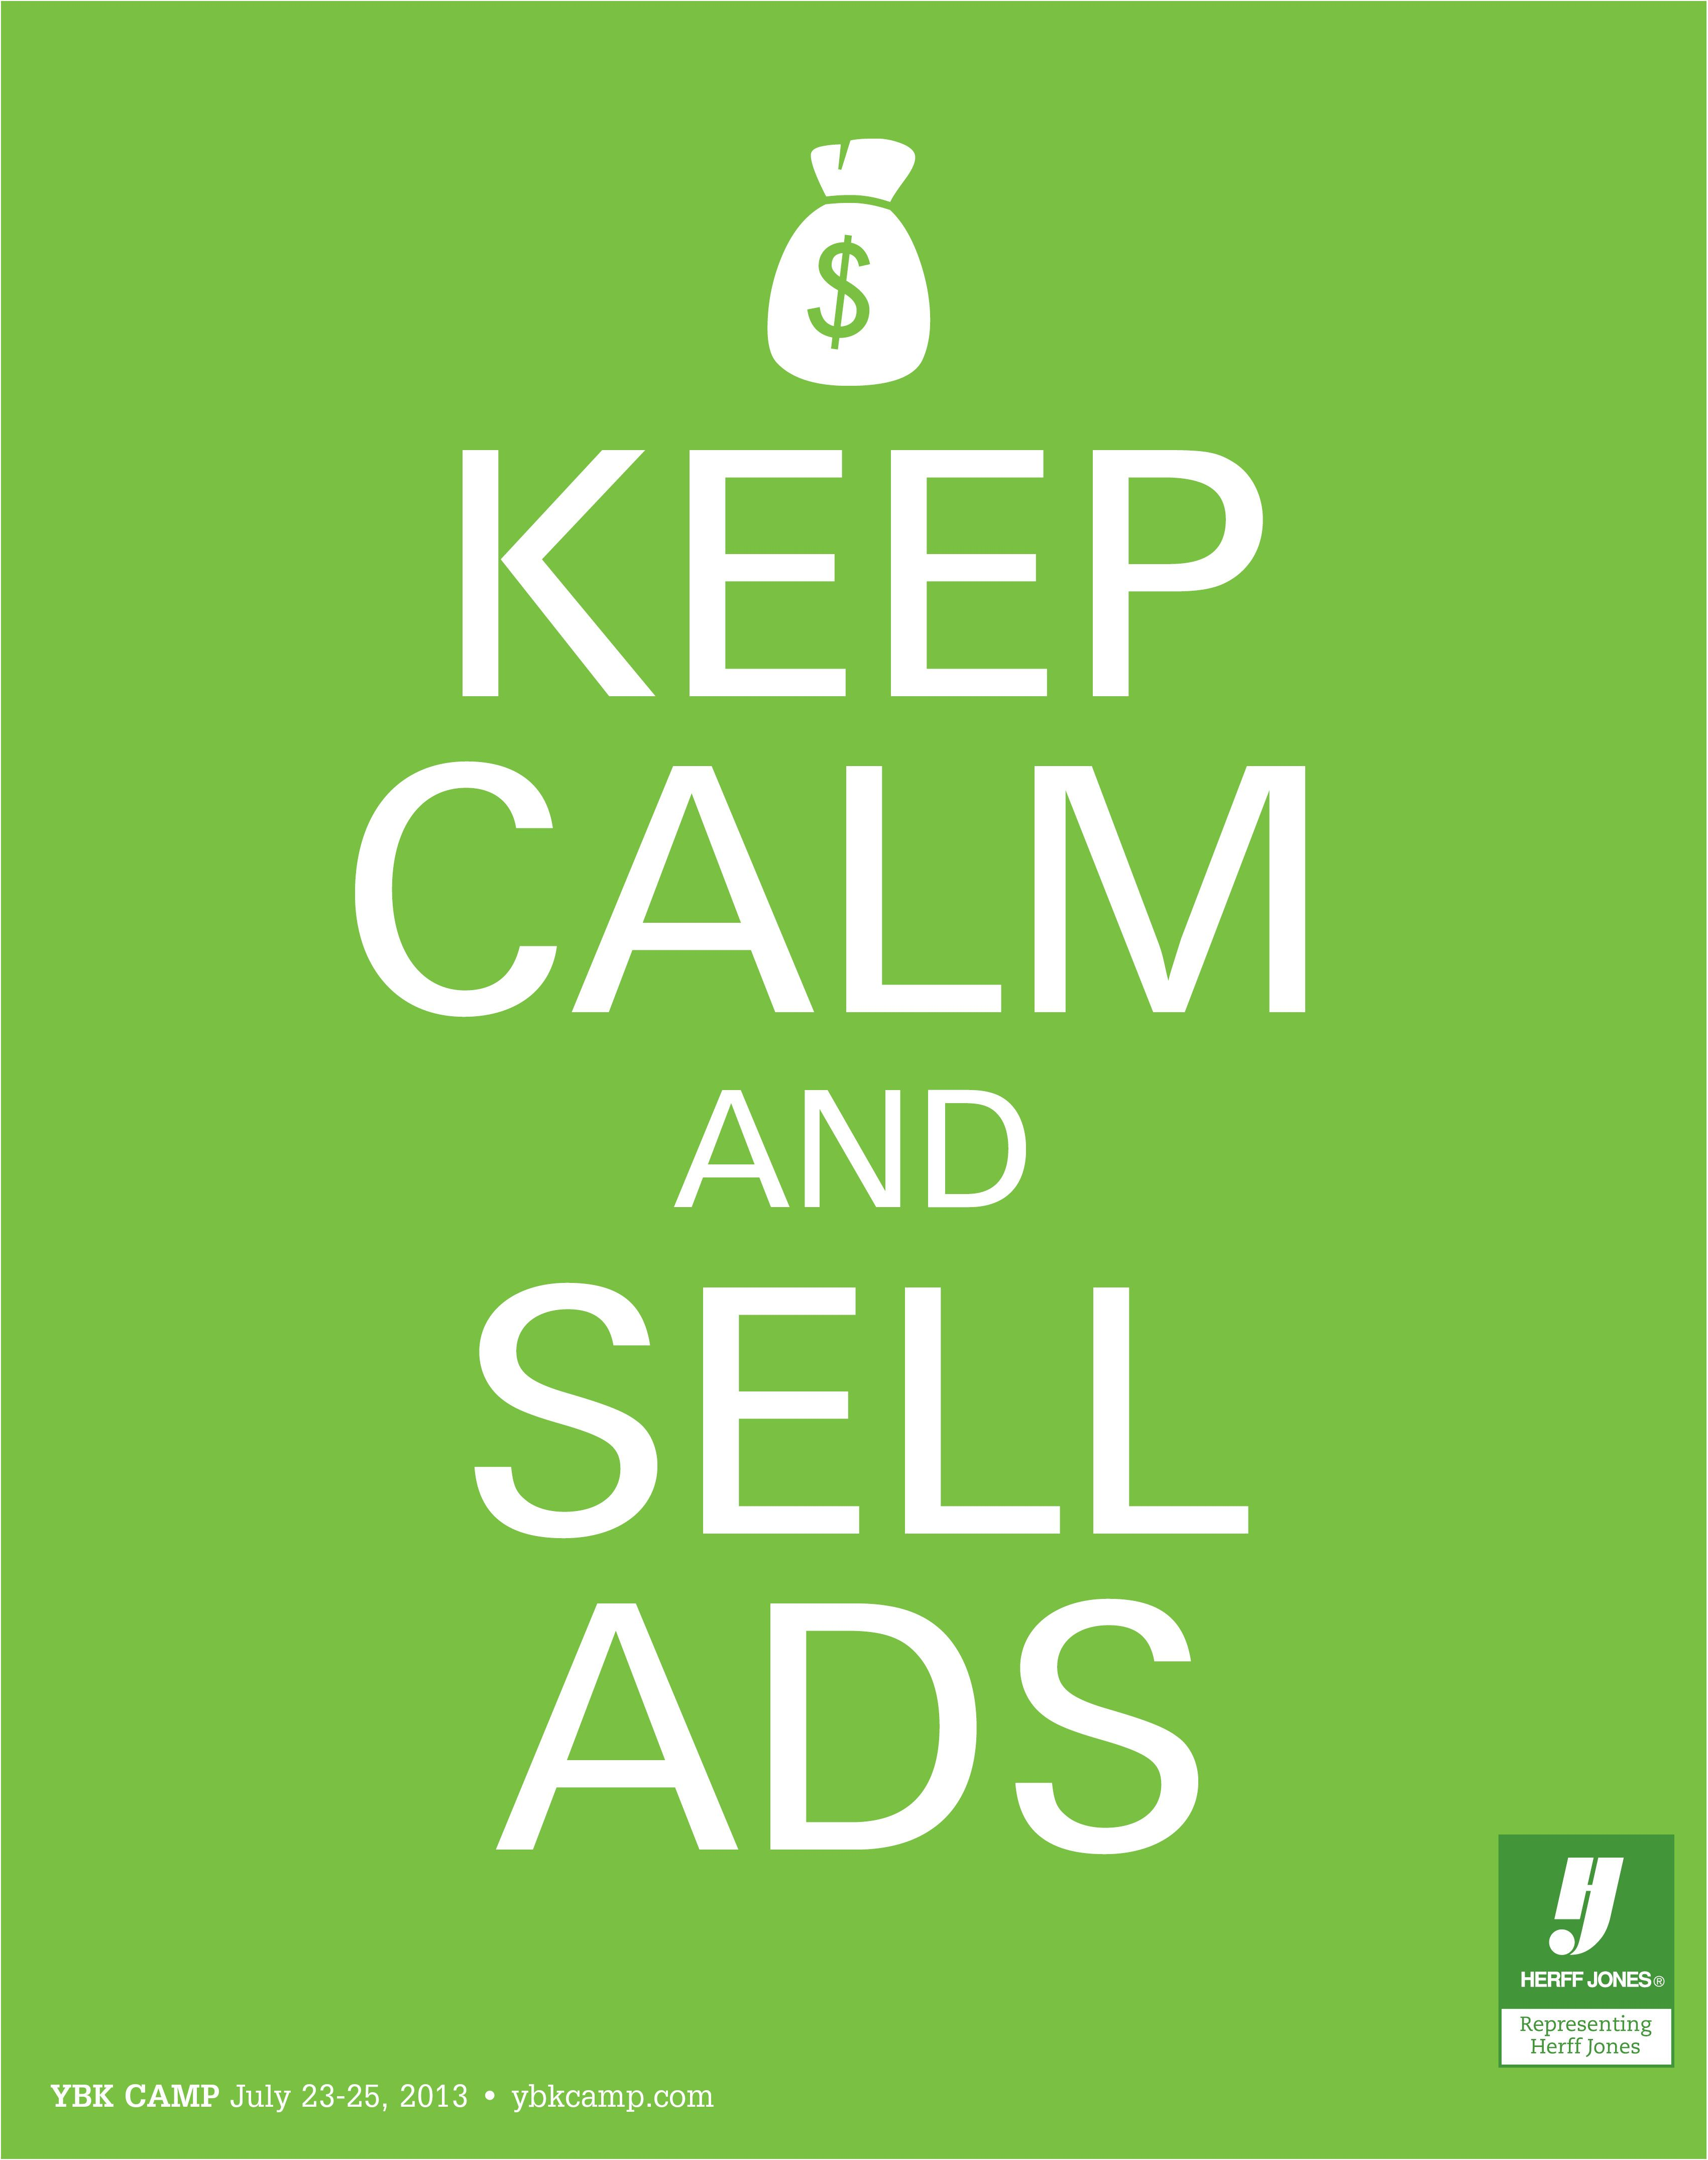 Keep calm and sell ads save the date for the summer ybk camp